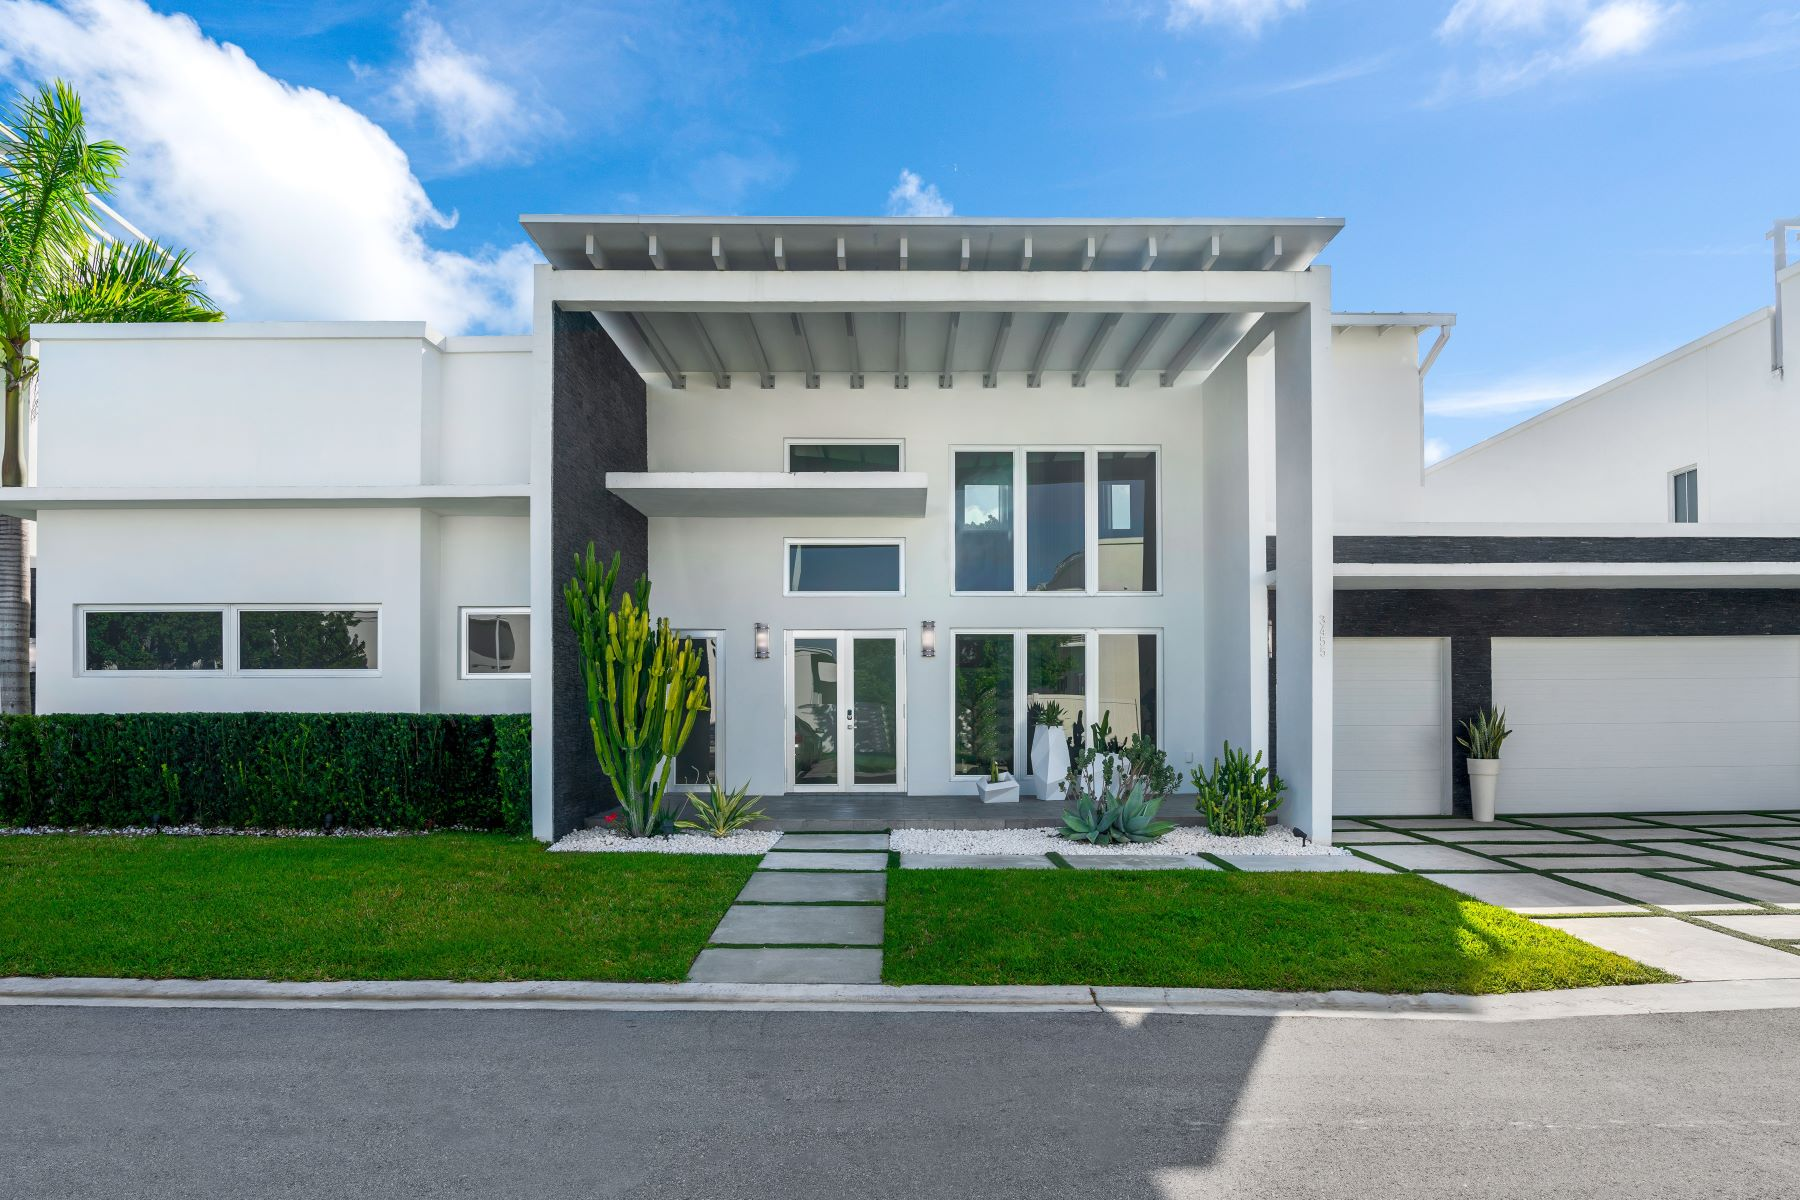 Single Family Homes for Active at 3455 Nw 82nd Ct, Doral, FL 3455 Nw 82nd Ct Doral, Florida 33122 United States